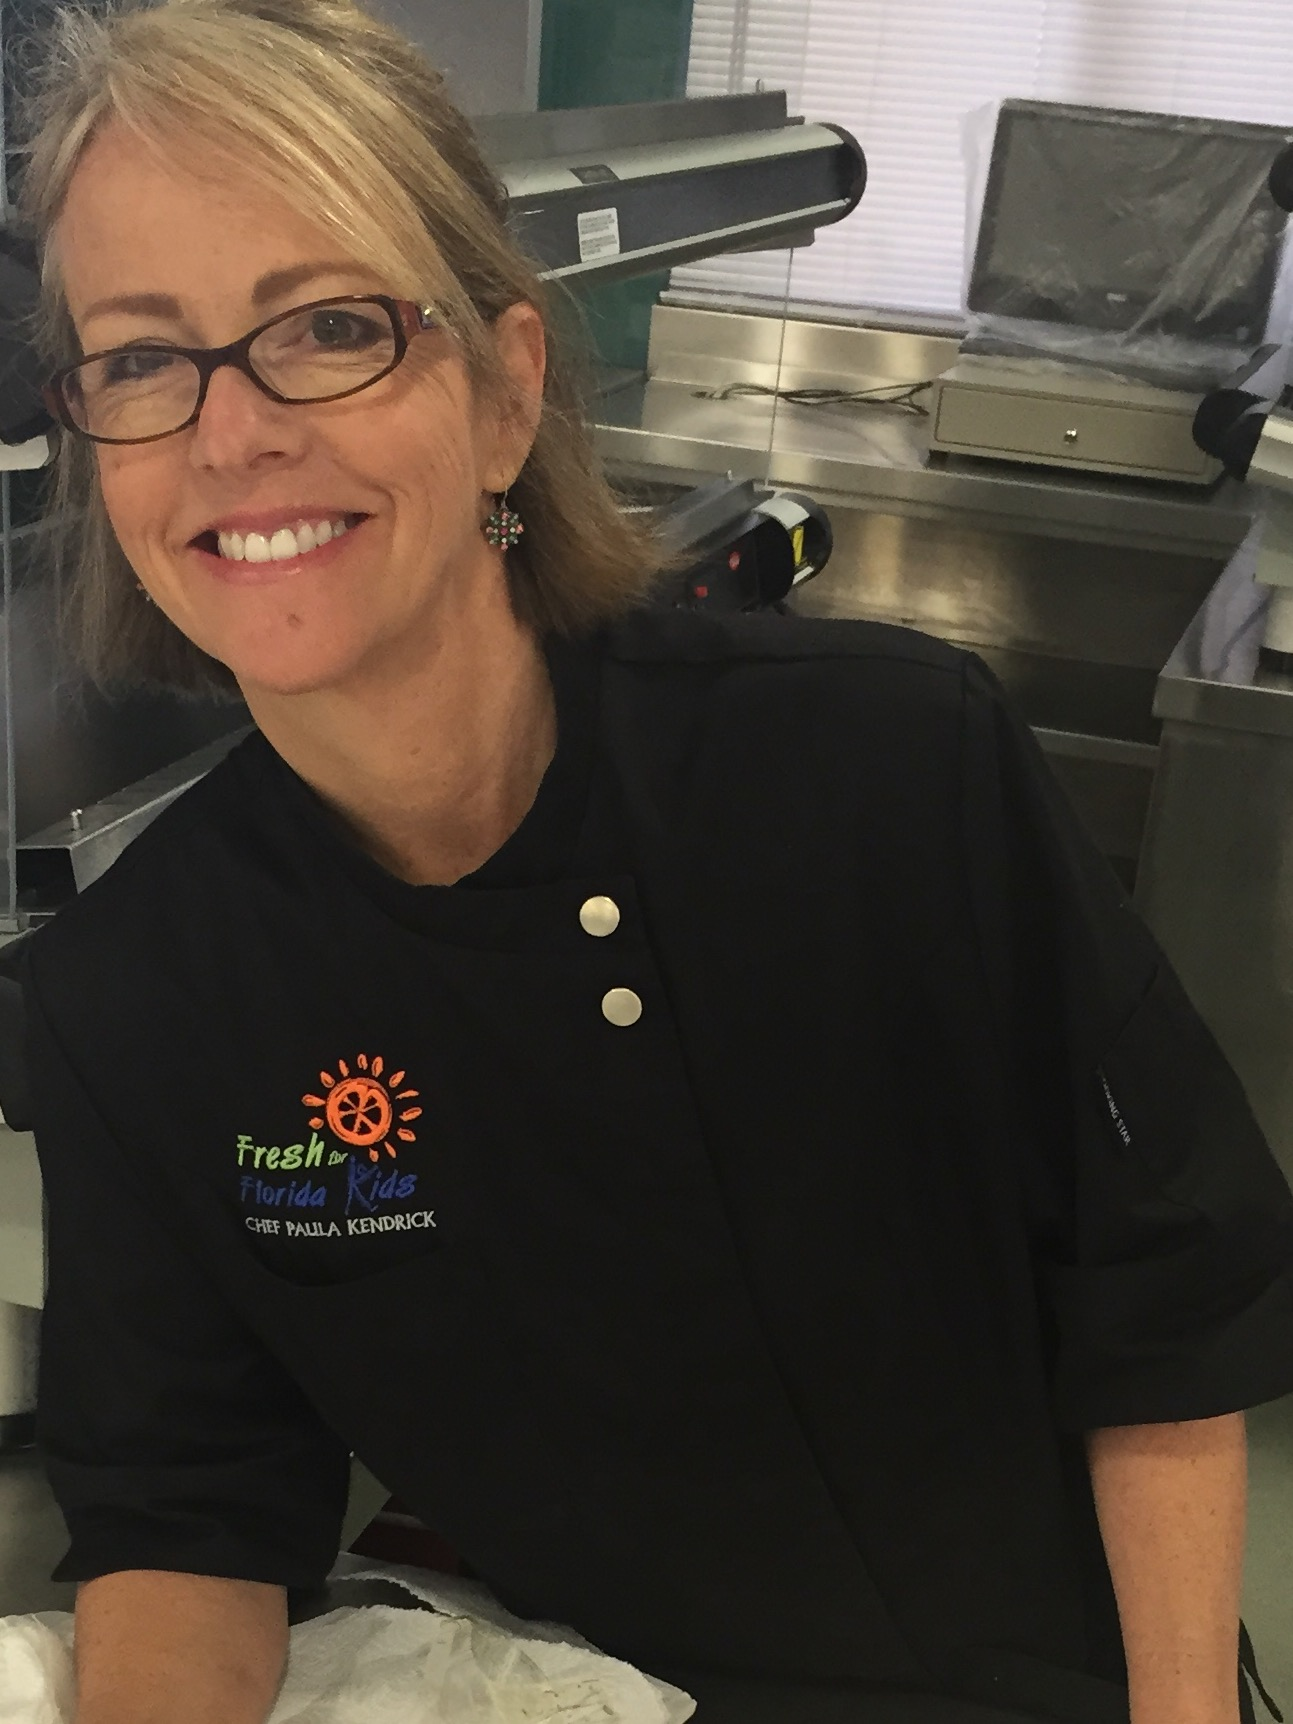 Fresh for Florida Kids Chef Paula Kendrick sampled fresh fruit and vegetable recipes at the Student Taste Plate.